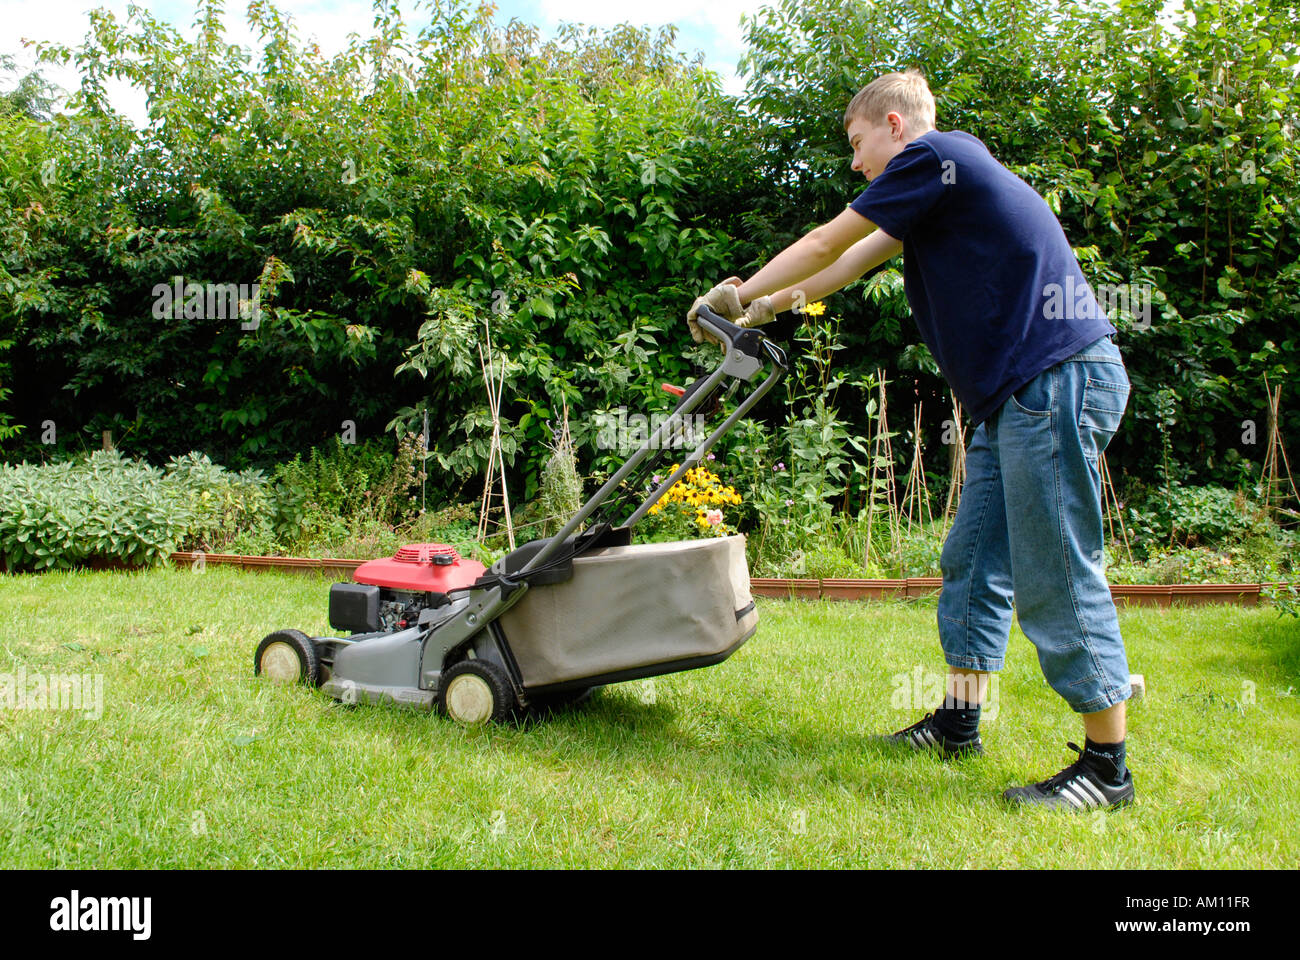 Teenager mowing lawn - Stock Image